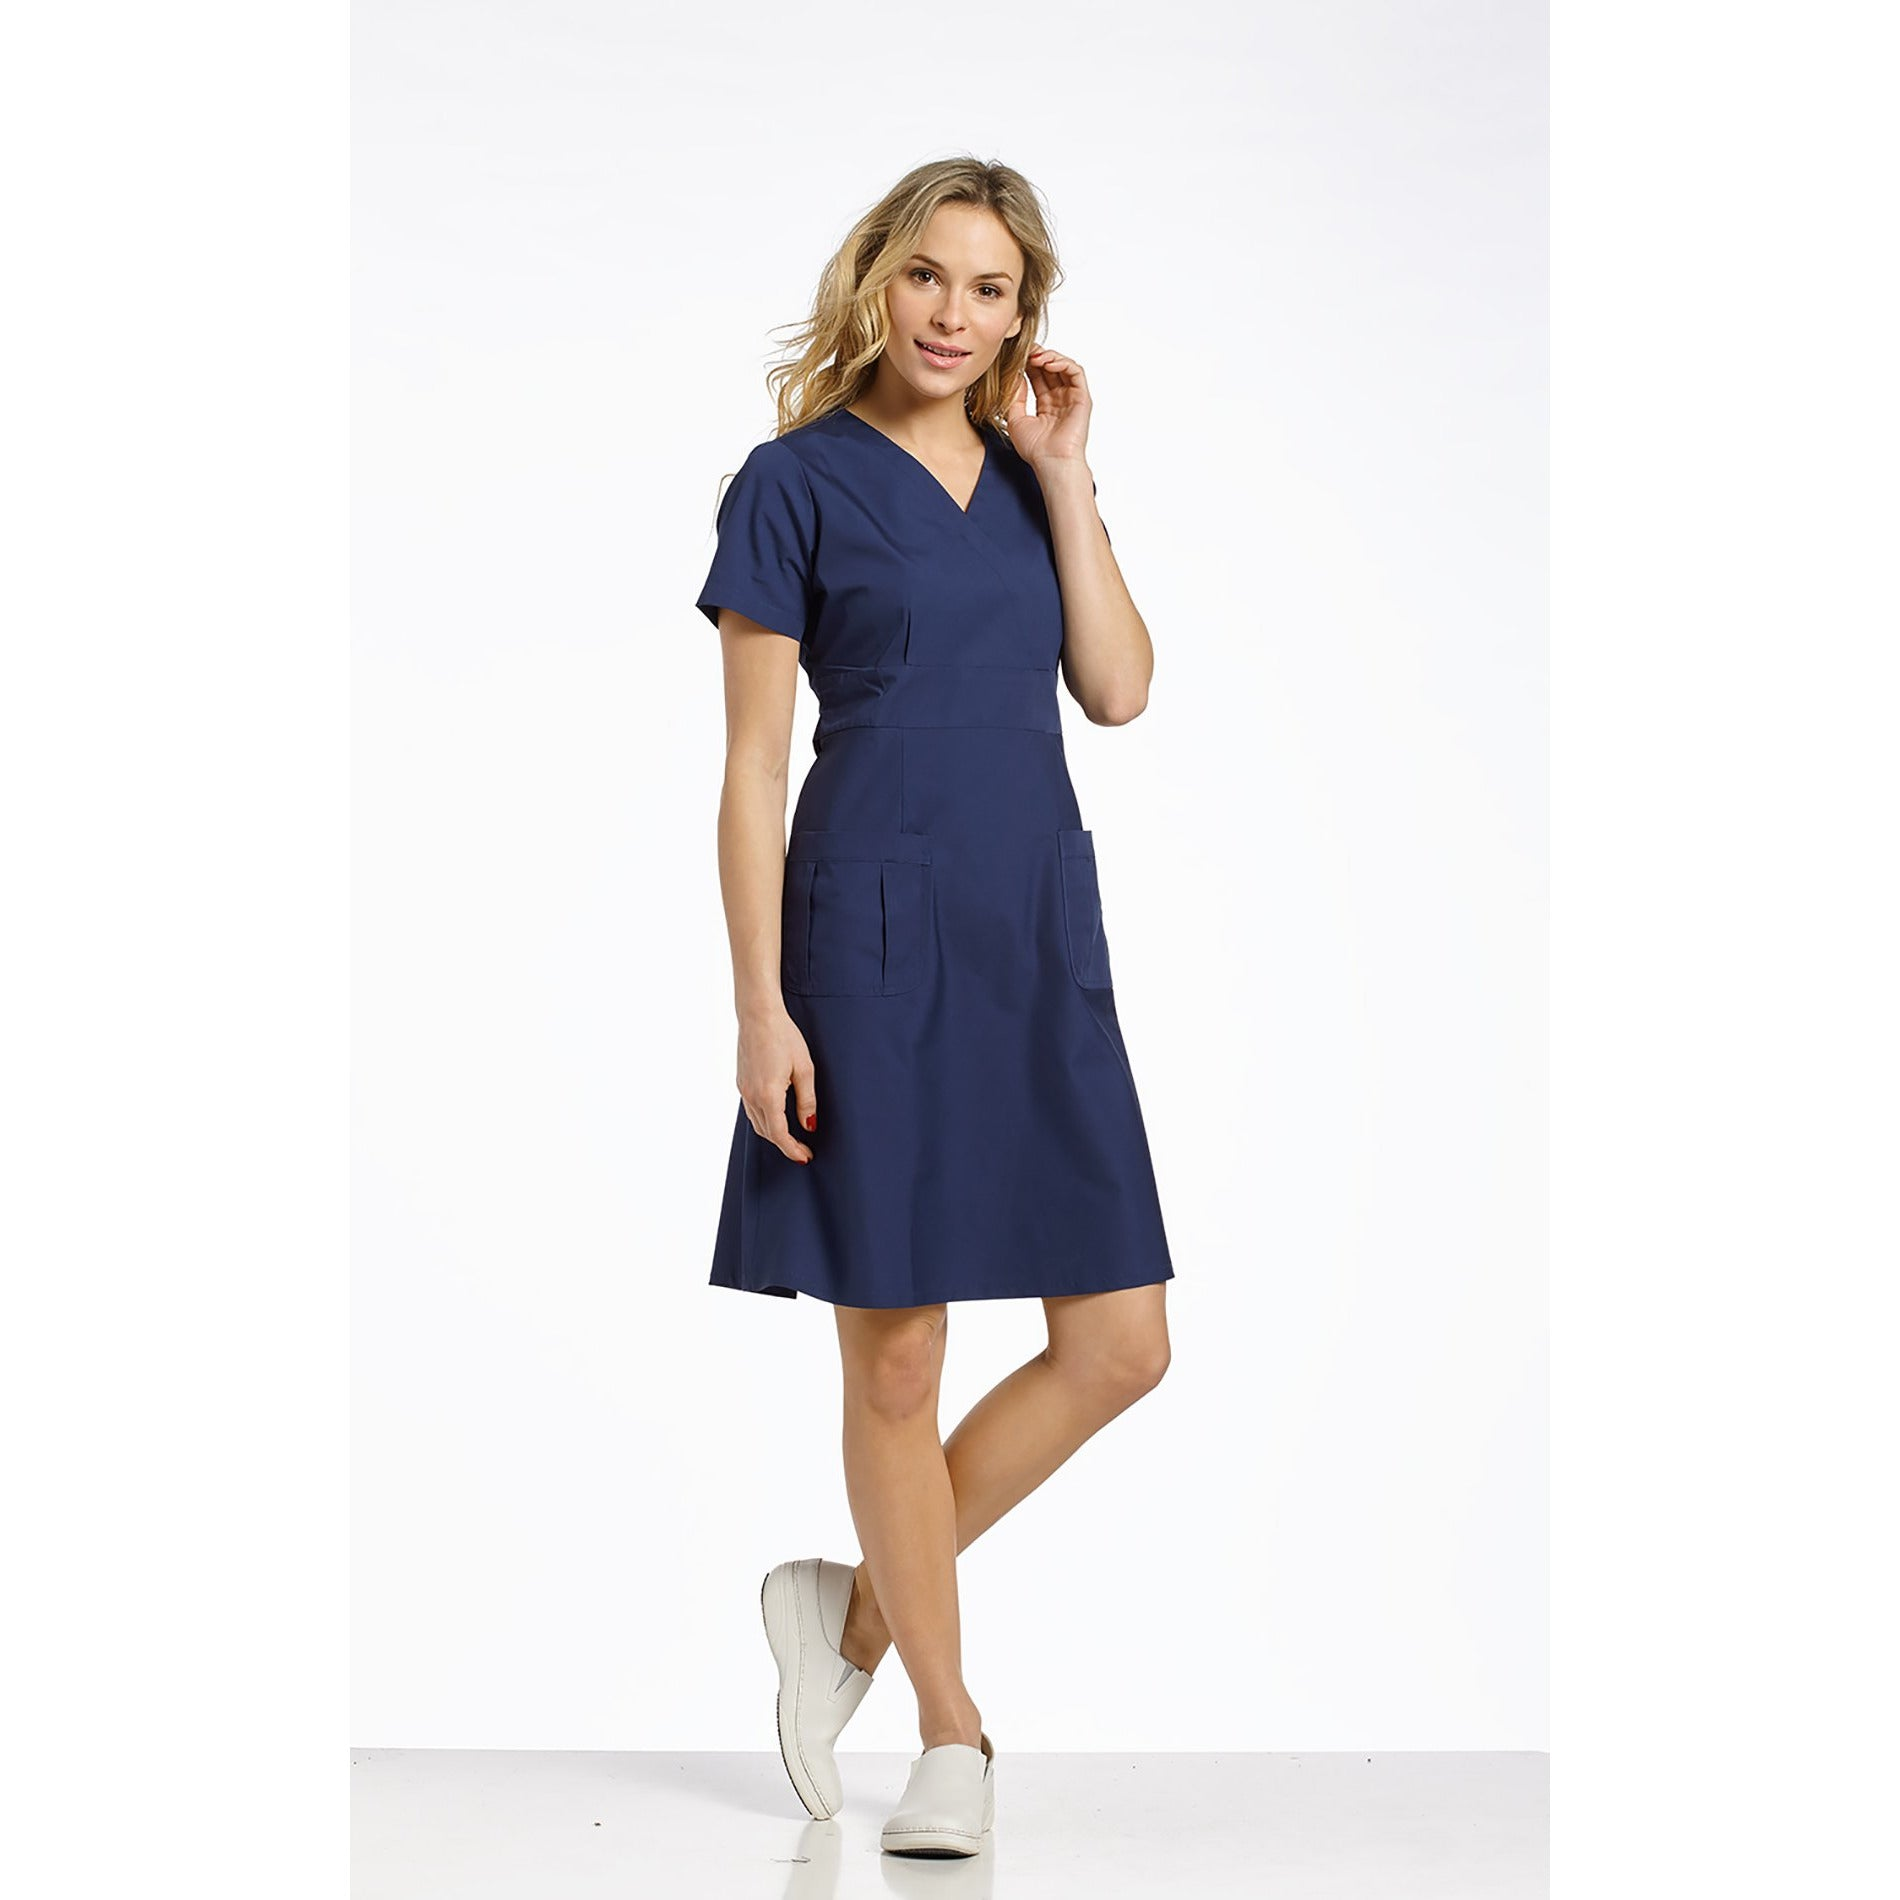 8011 White Cross Mock Wrap A-Line Scrub Dress